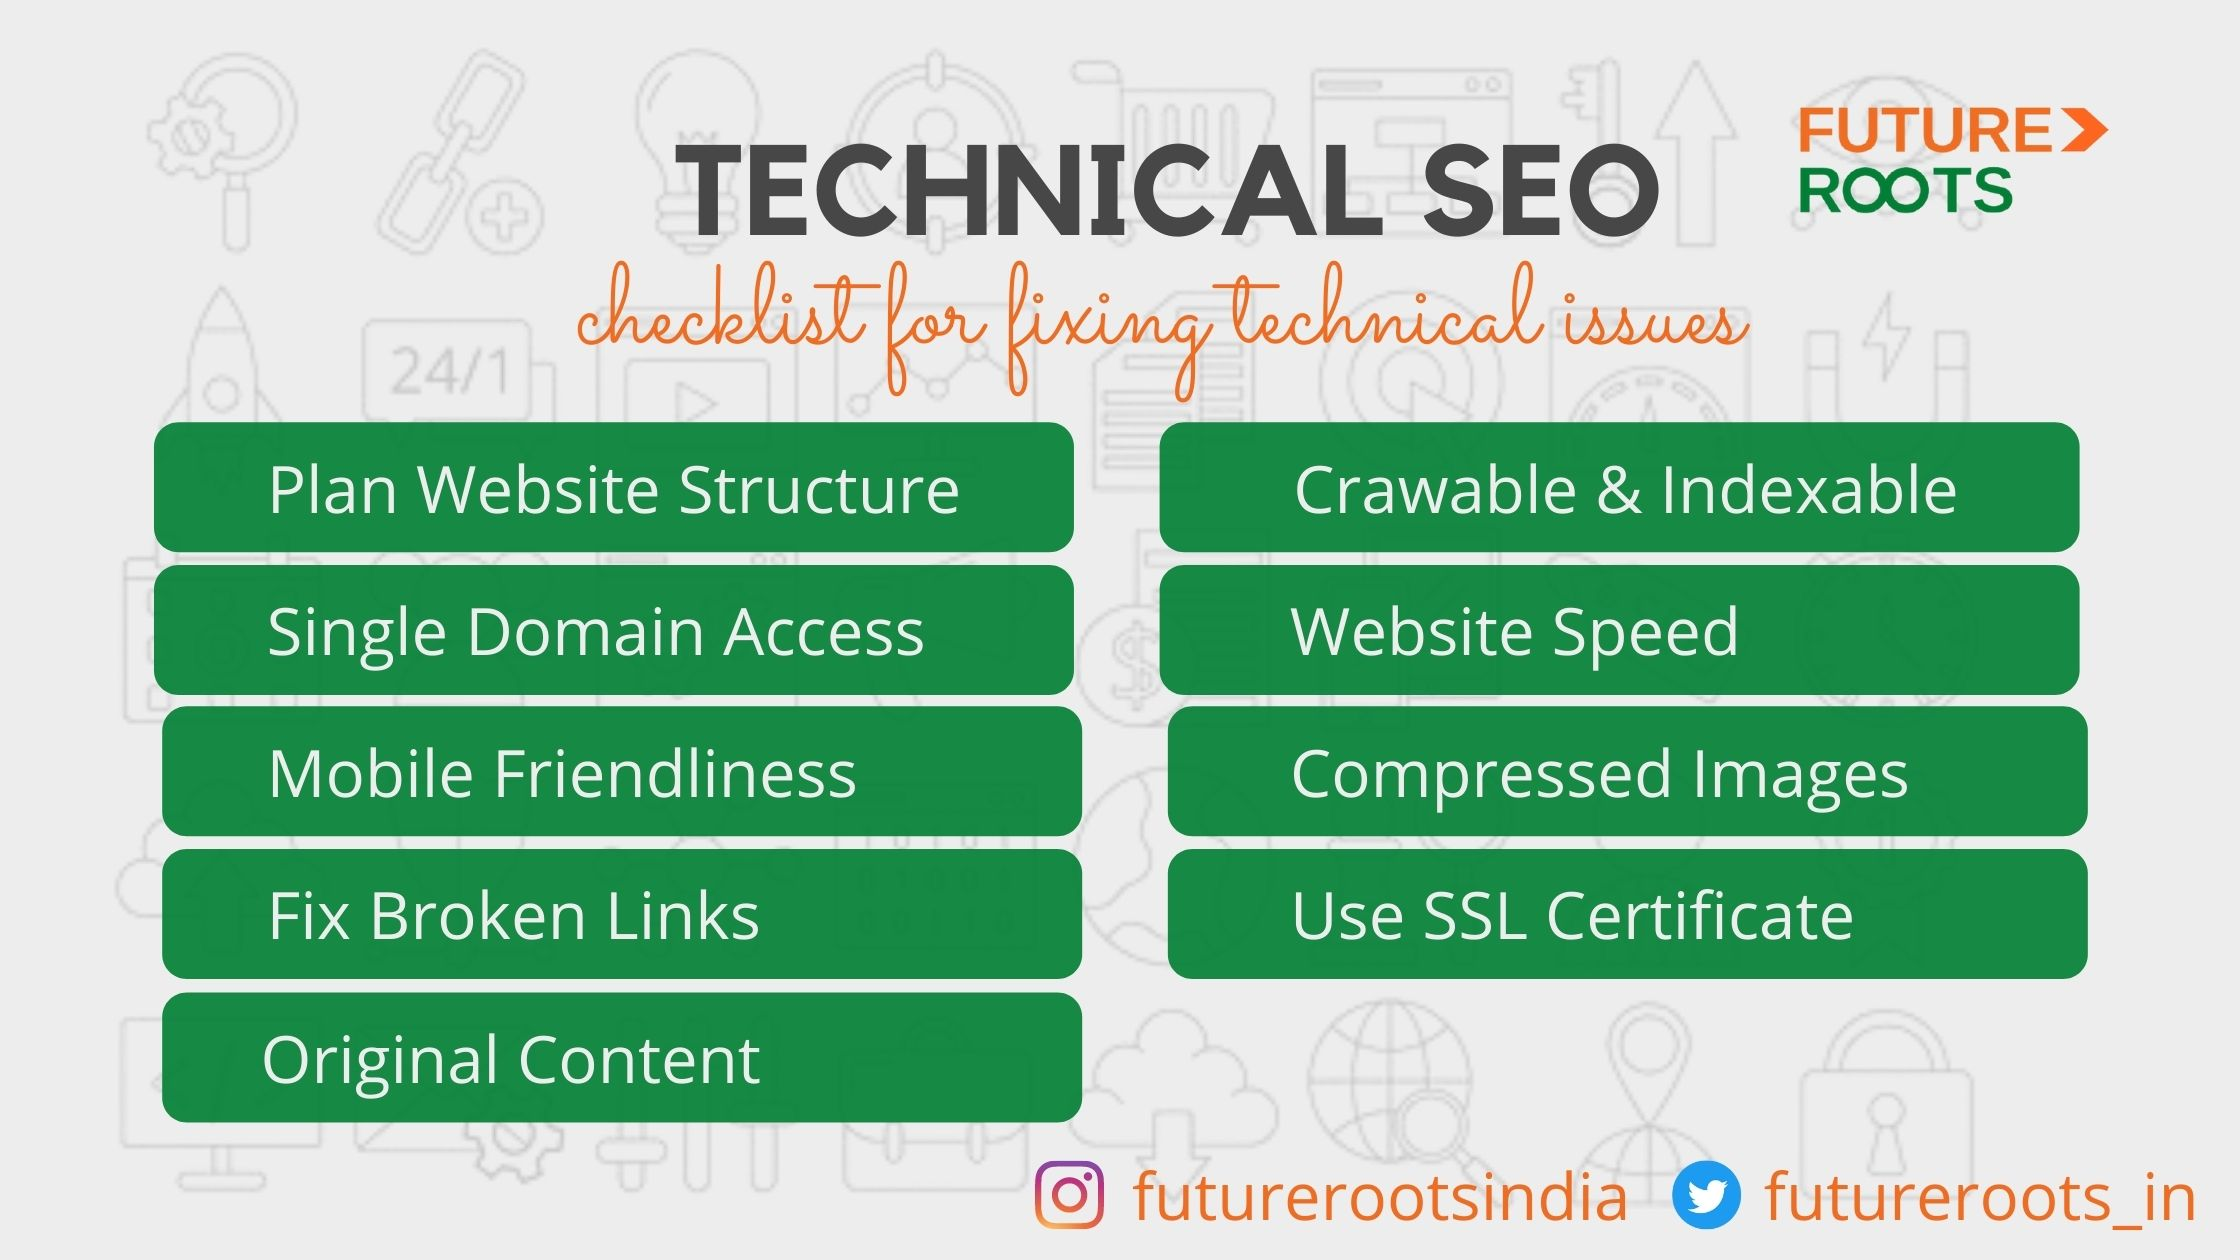 Checklist for fixing technical issues in SEO